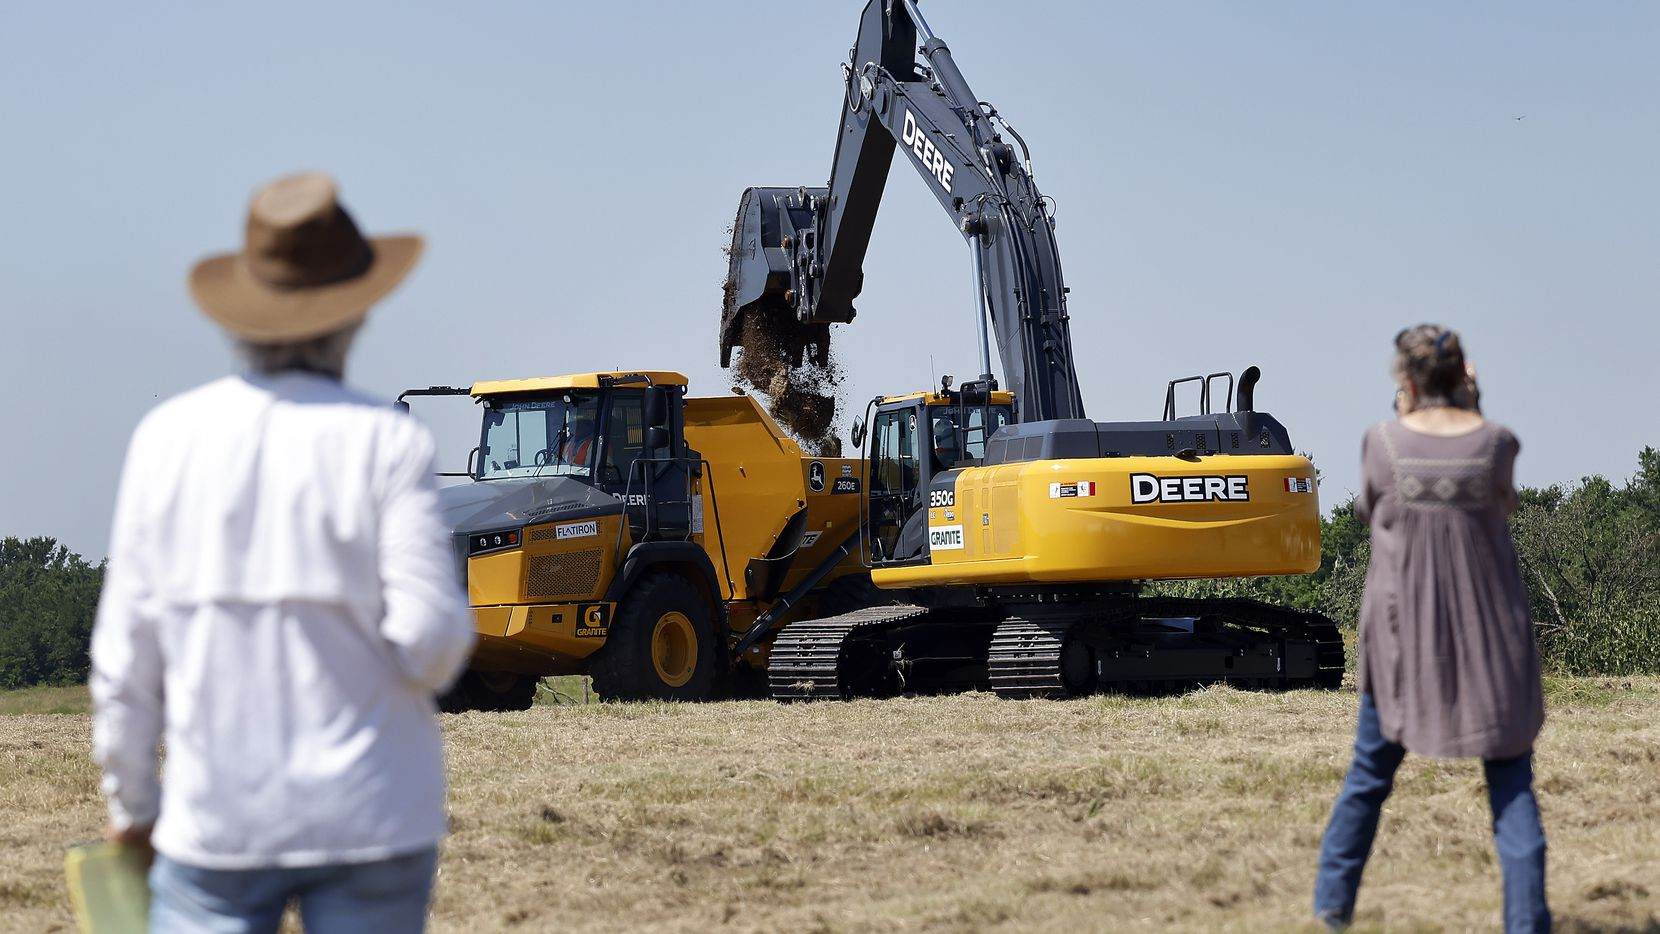 The first scoop of dirt was dumped in a truck following the Upper Trinity Regional Water District groundbreaking ceremony for Lake Ralph Hall and Leon Hurse Dam near Ladonia, Texas, Wednesday, June 16, 2021. The lake will provide 54 million gallons of water per day for some 29 communities in Denton and Collin counties. The $490 million project should begin delivering water by 2025. The lake is named after Hall who was a United States Representative for Texas's 4th congressional district.